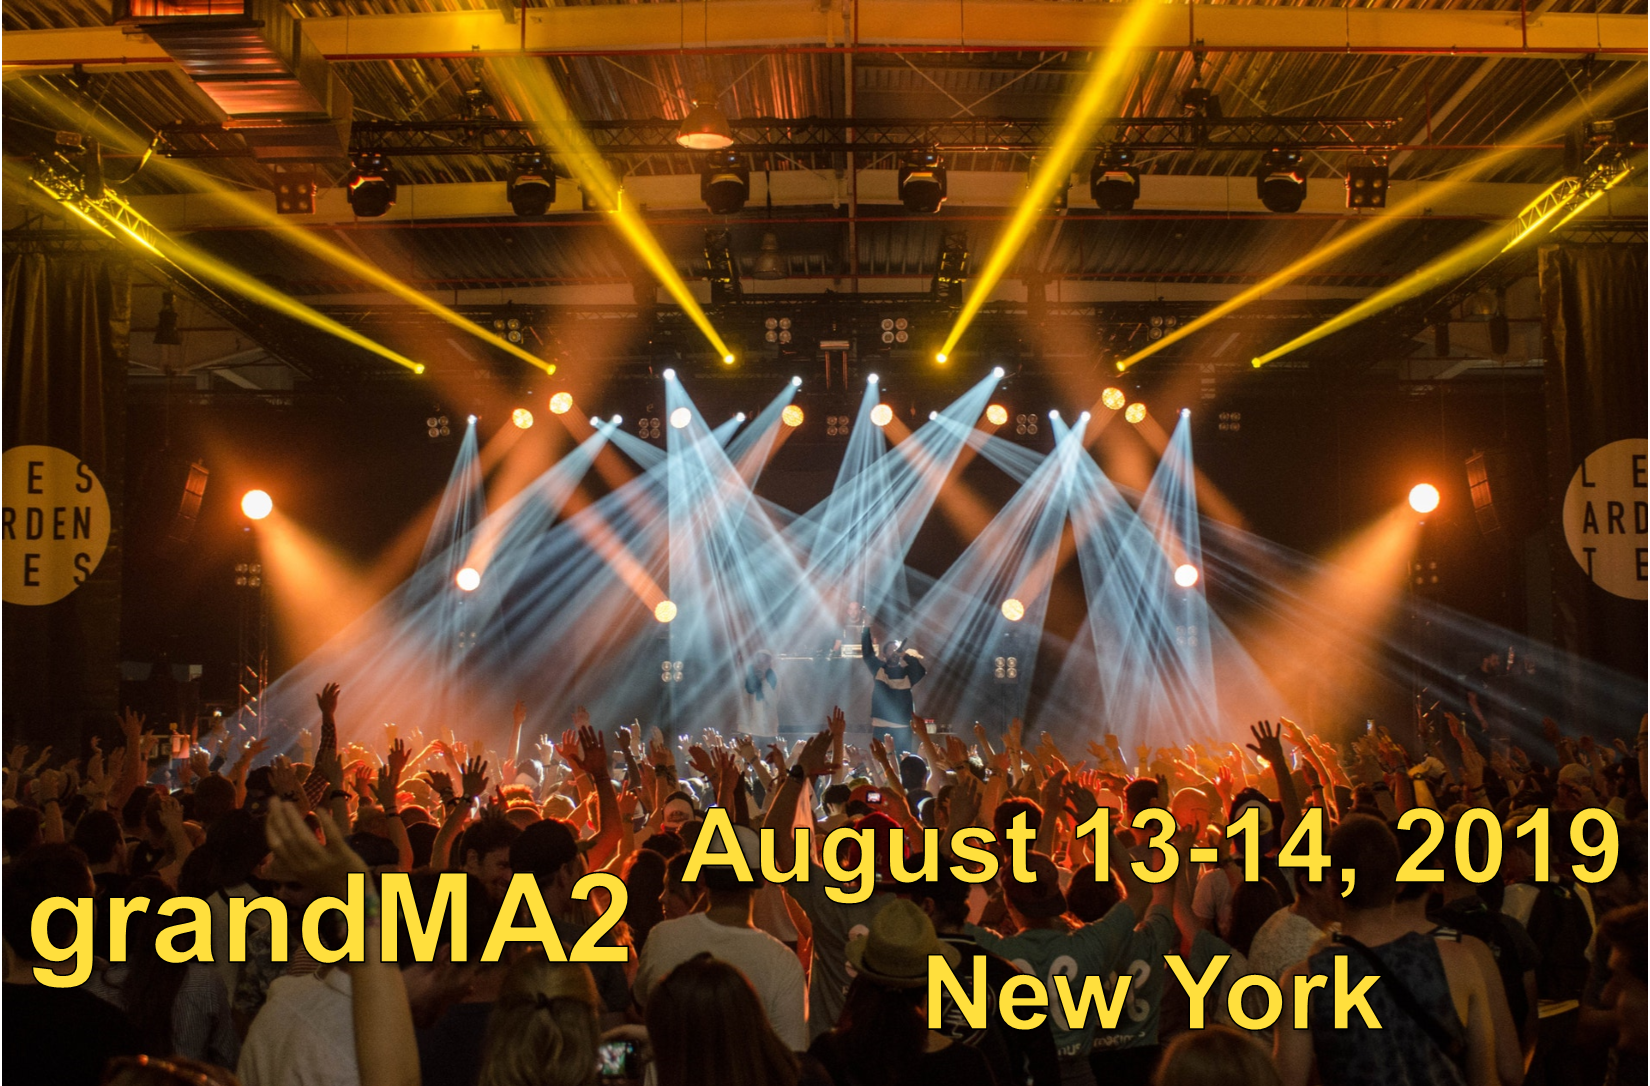 grandMA2 Class - August 13-14, 2019 - New York - SOLD OUT